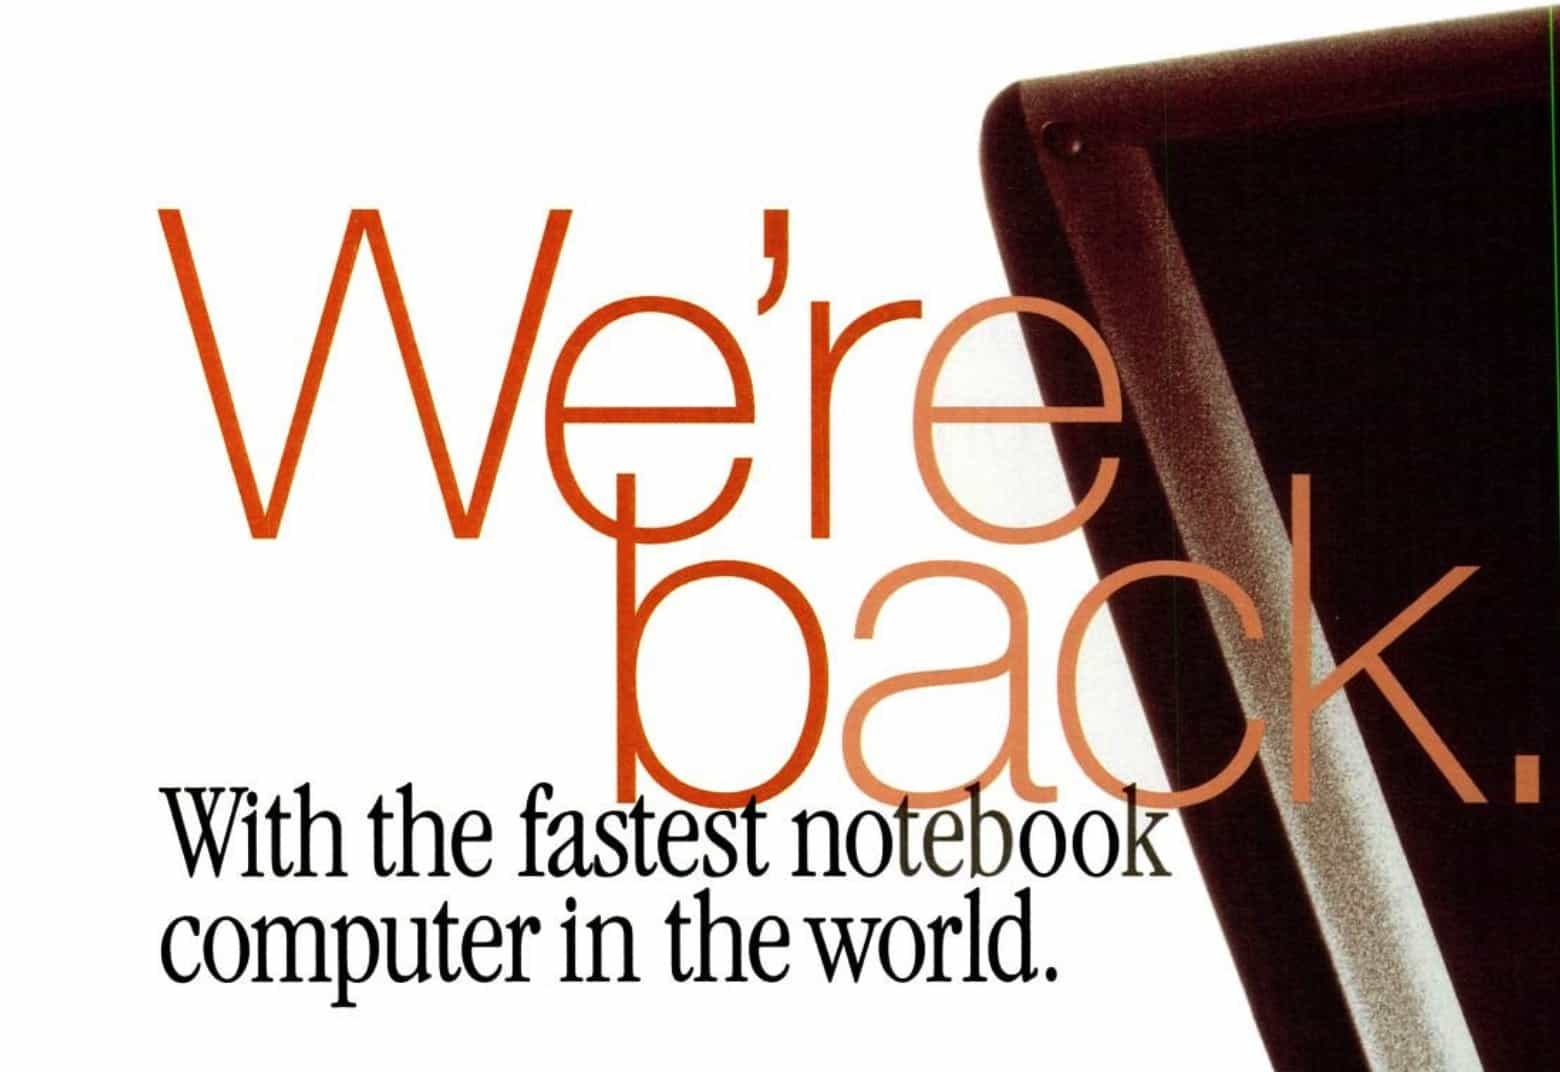 The PowerBook 3400 certainly lived up to its name.